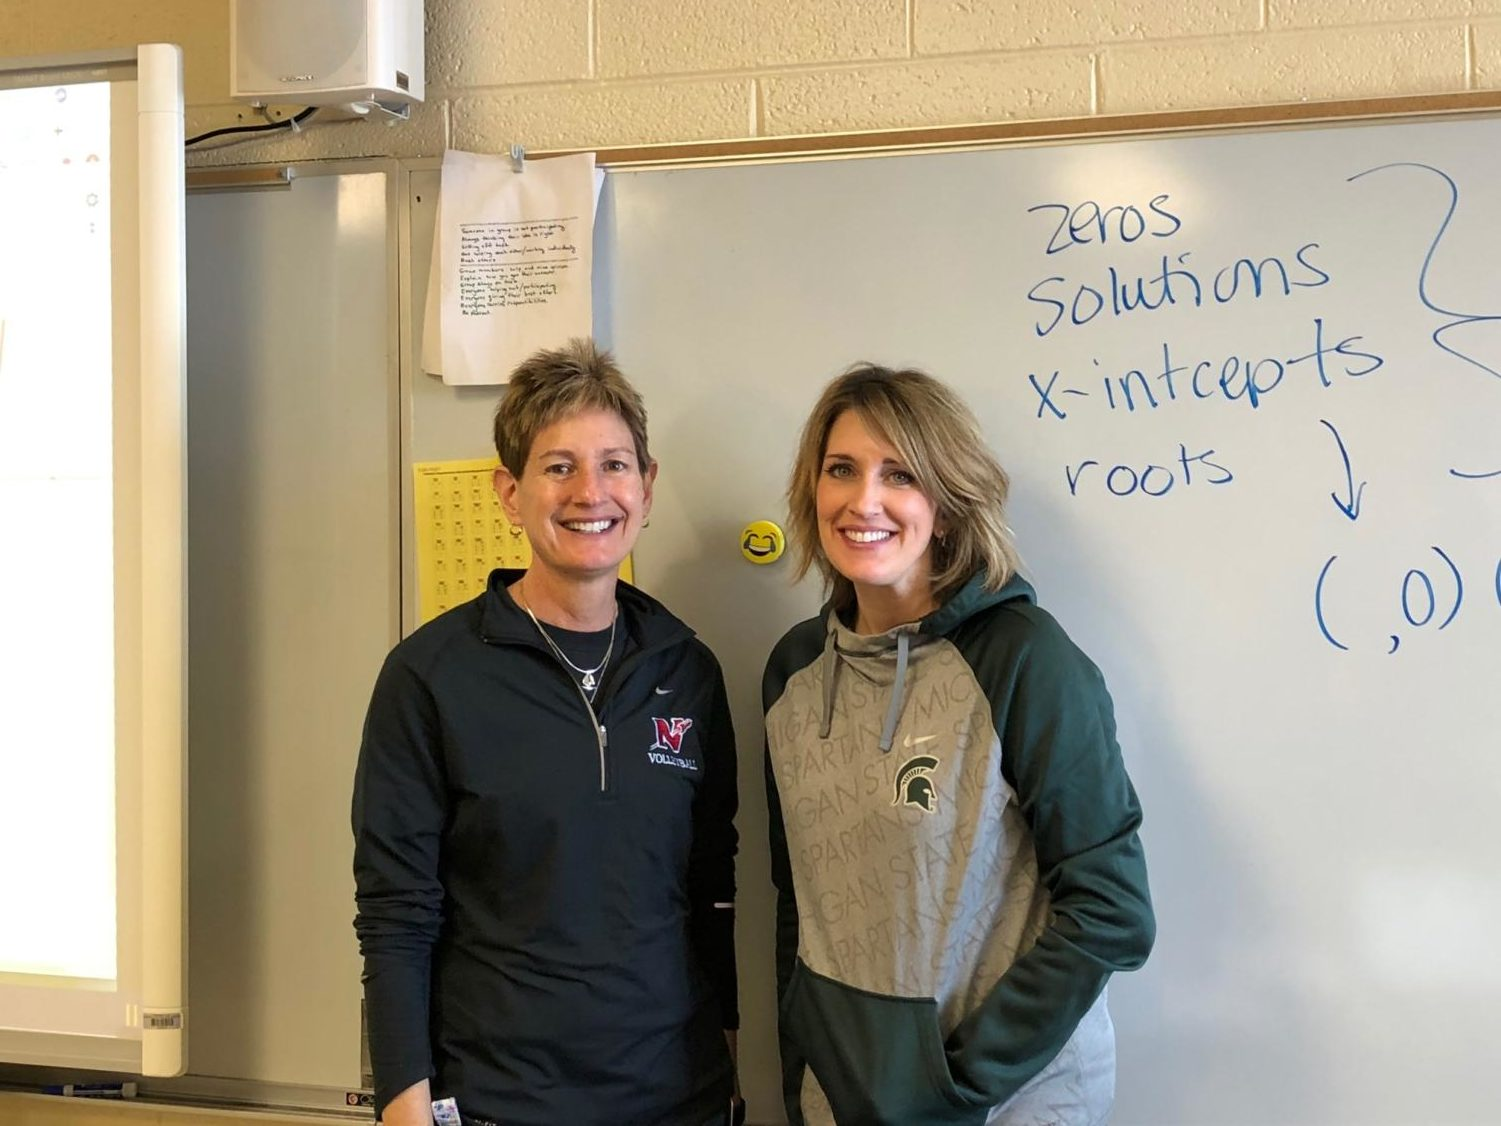 Since the 2012-'13 school year, Hermans (left) and Gasparick (right) have seen improvement with their dual-teaching style.